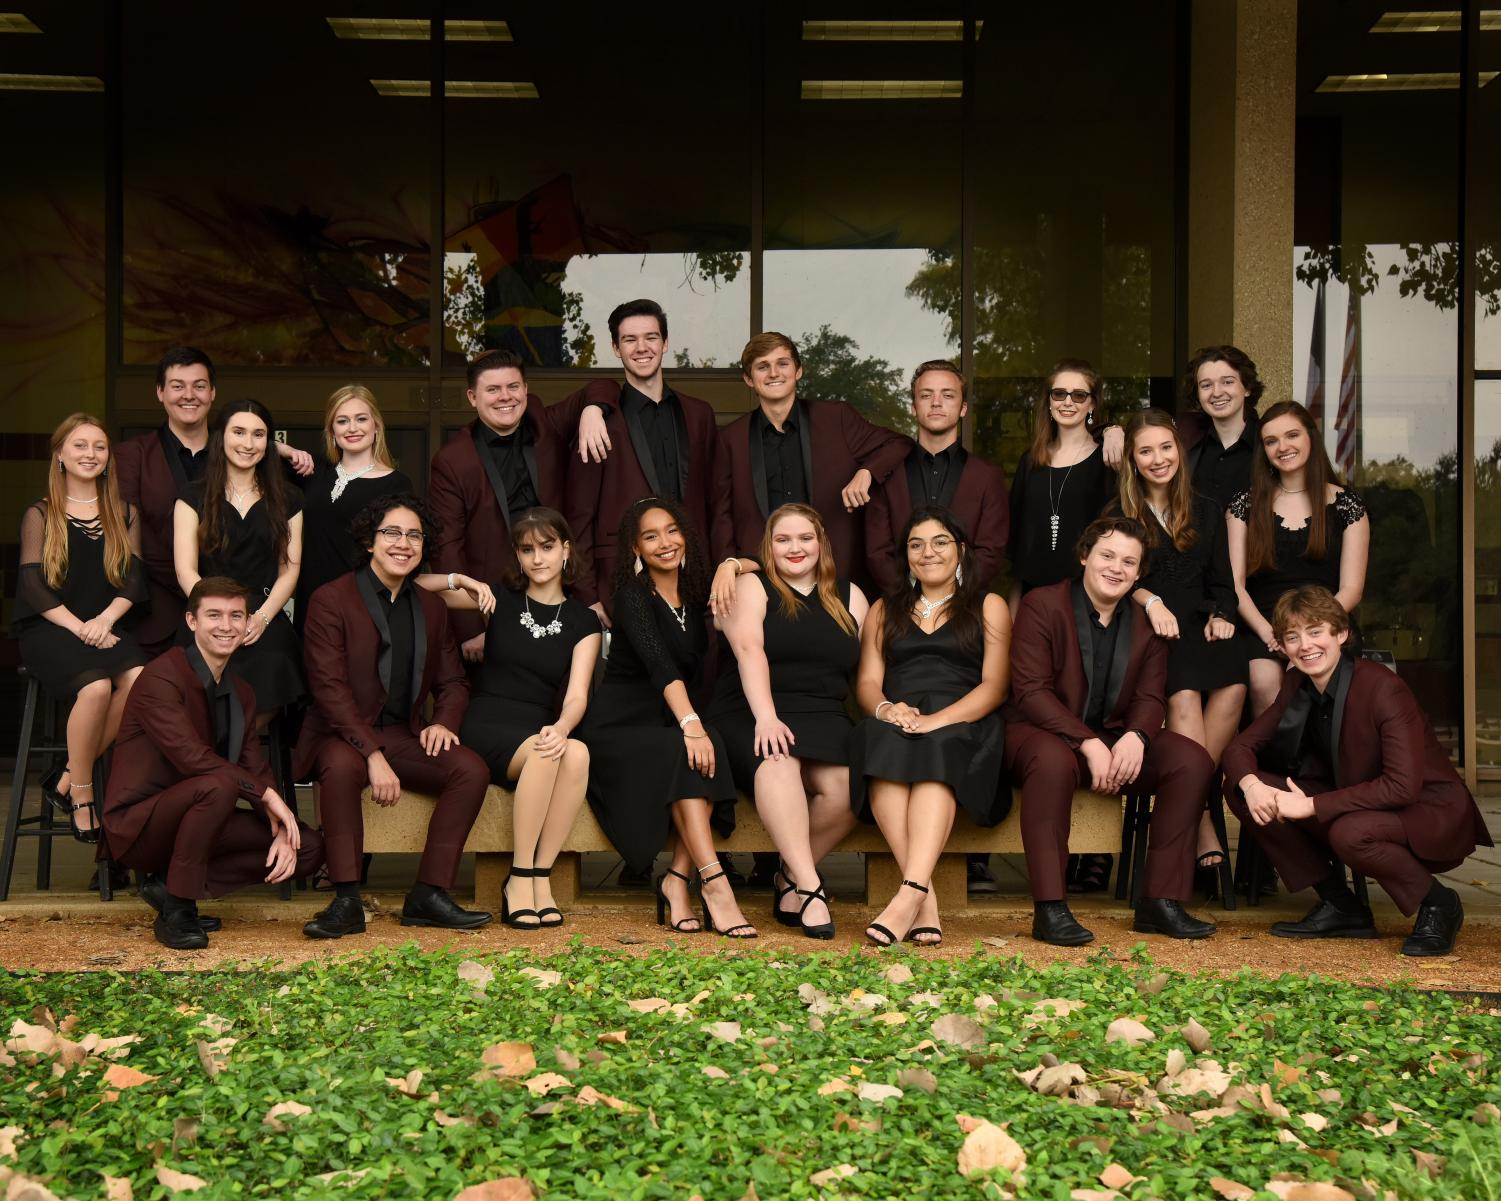 Music Corporation posing in their fancy attire to promote their jazz concert.